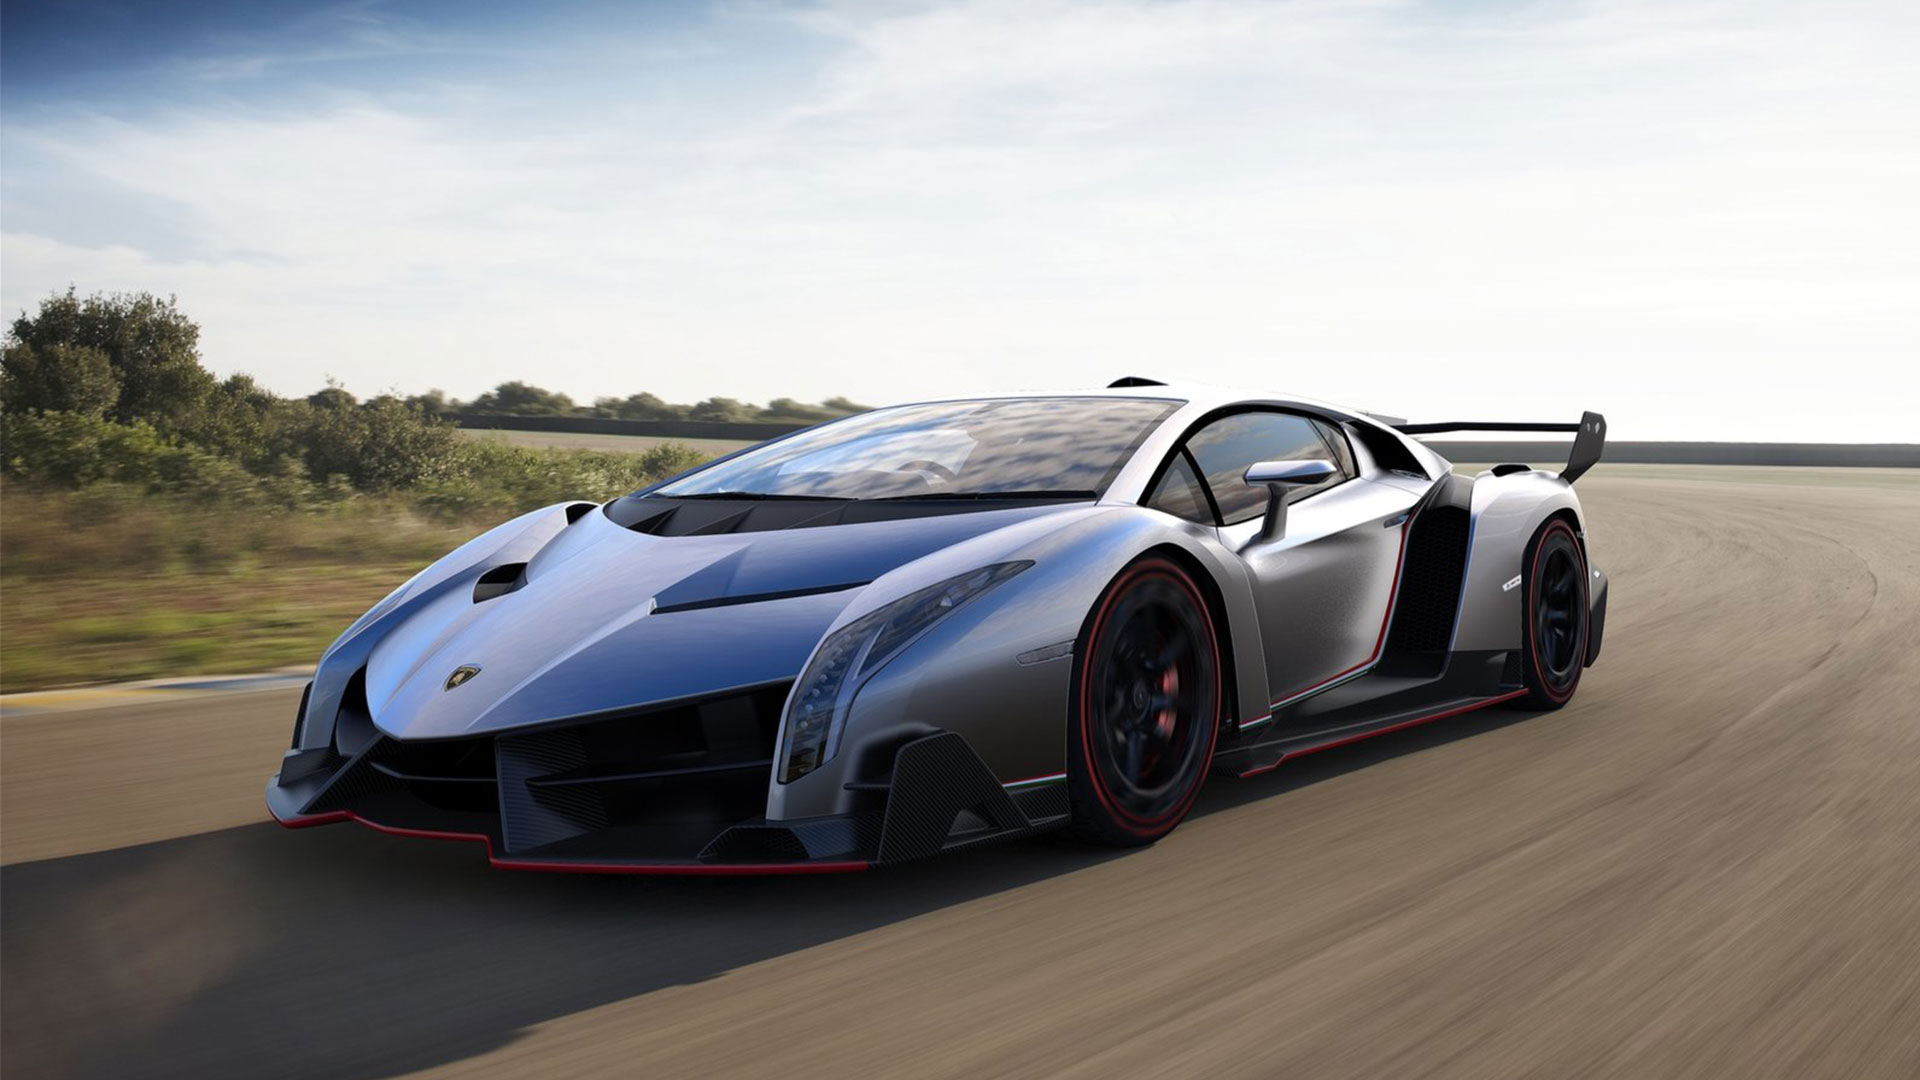 Lamborghini Veneno Wallpaper Car Wallpaper Mobile. Download